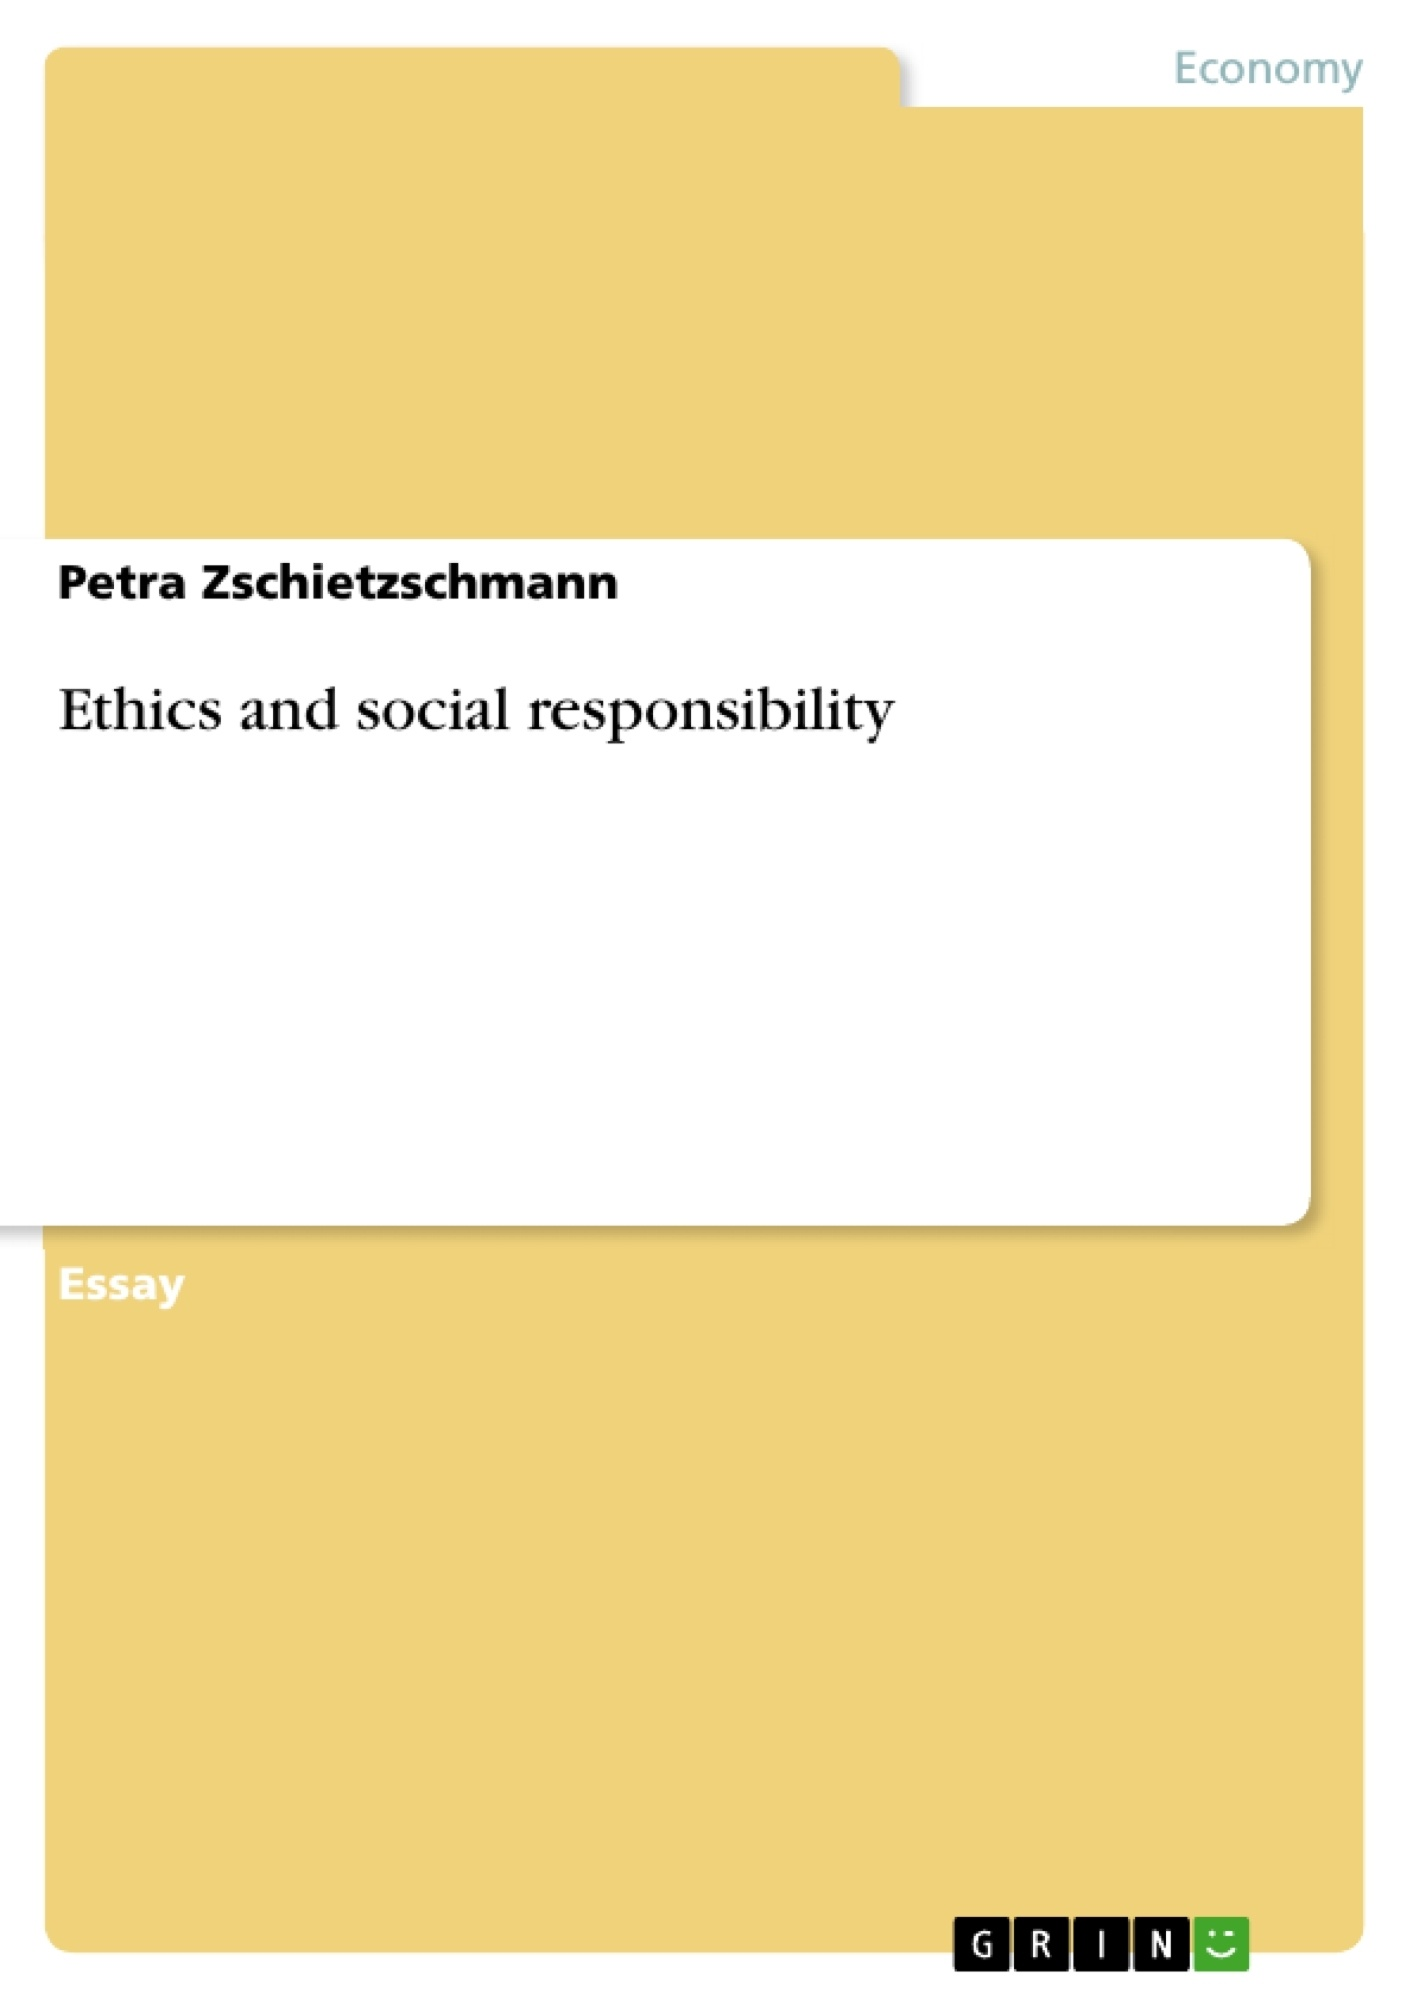 Title: Ethics and social responsibility